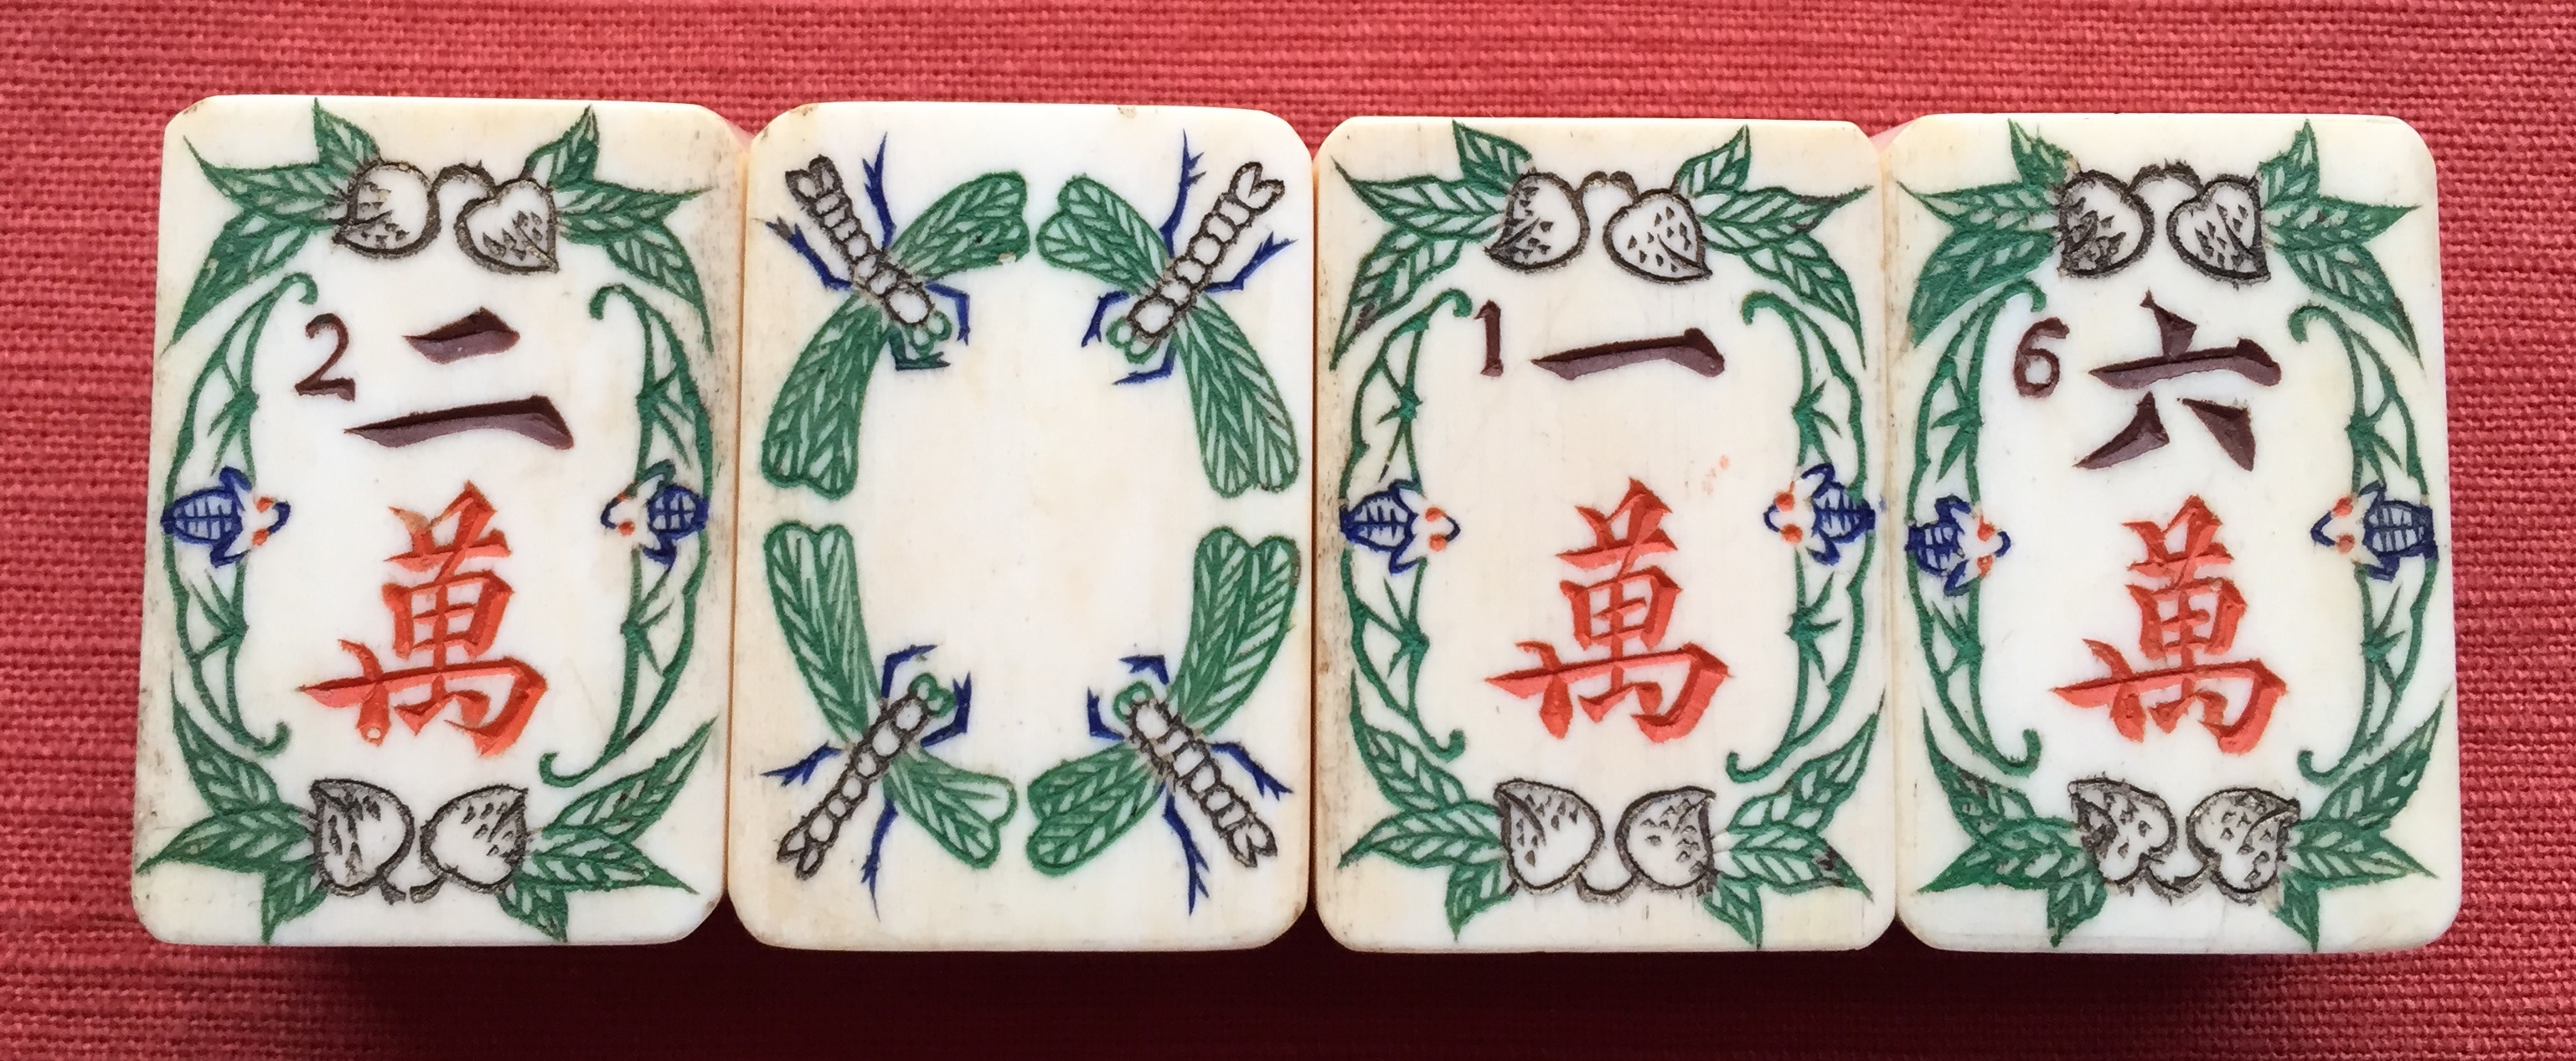 Mahjong Treasures